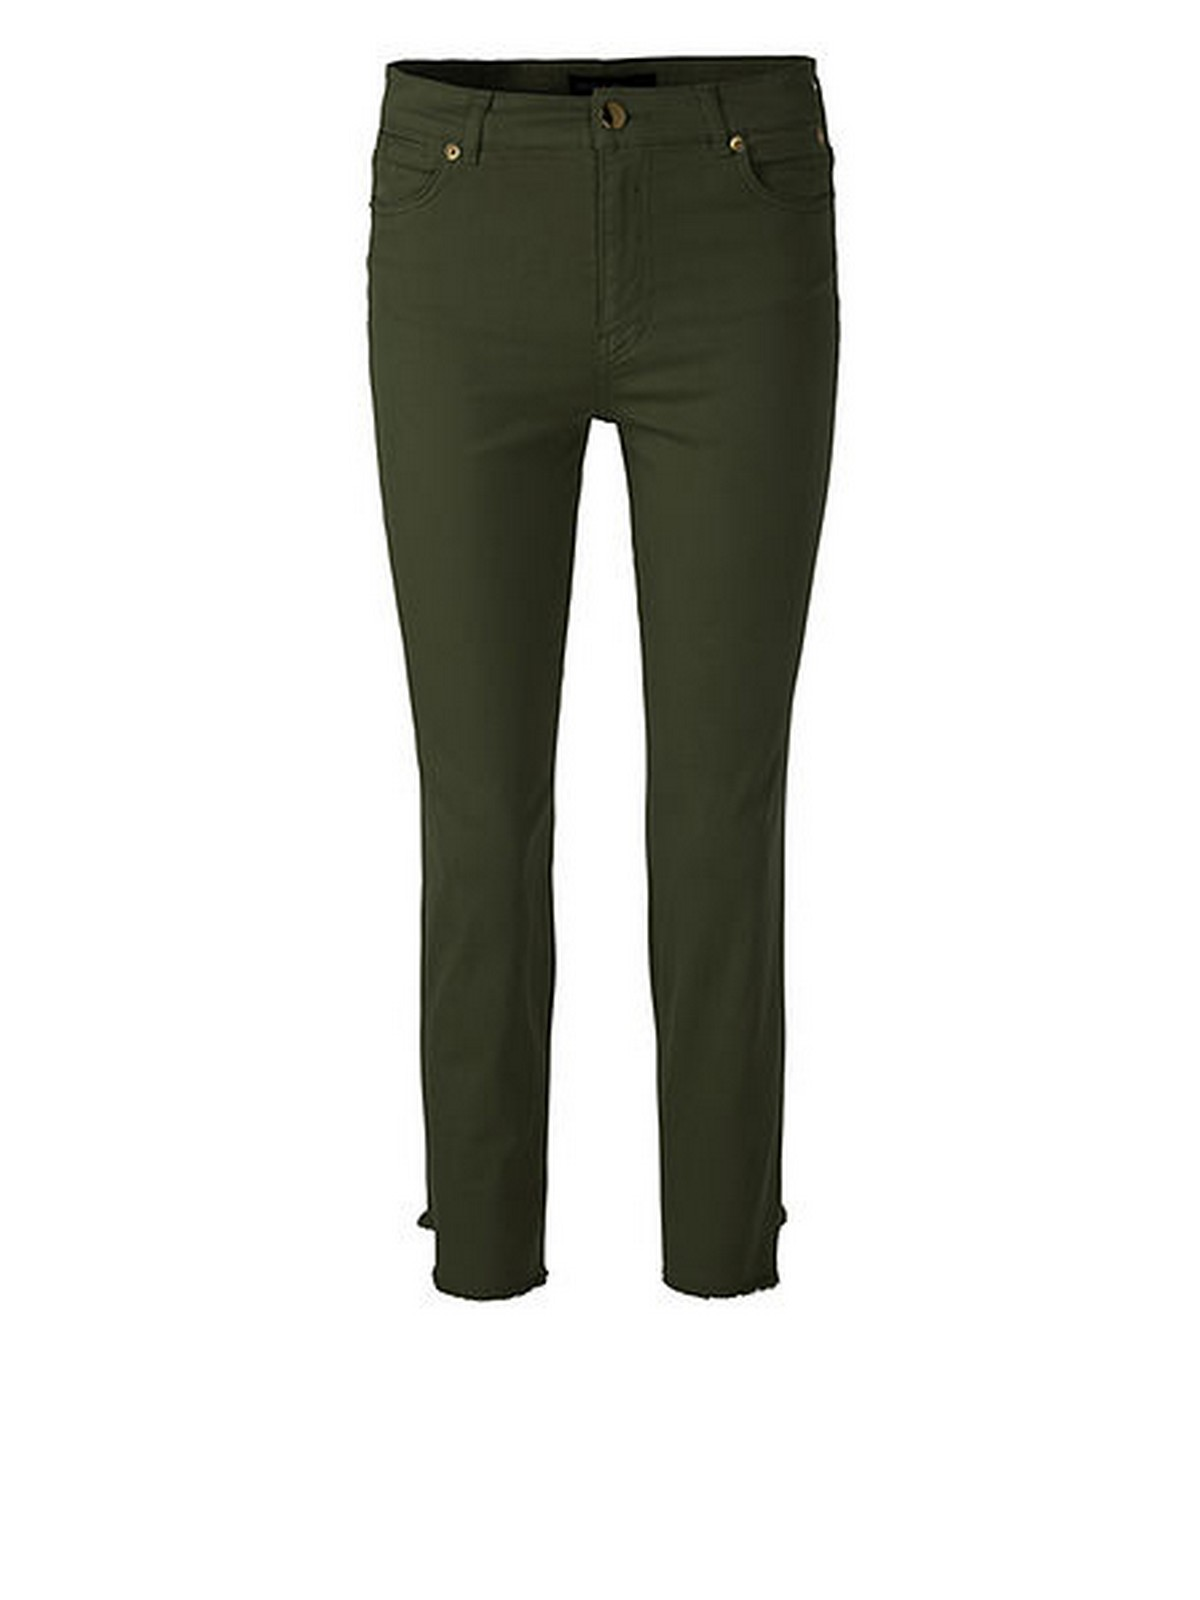 Broek 5 pocket - QC 82.01 D03 - Marc Cain